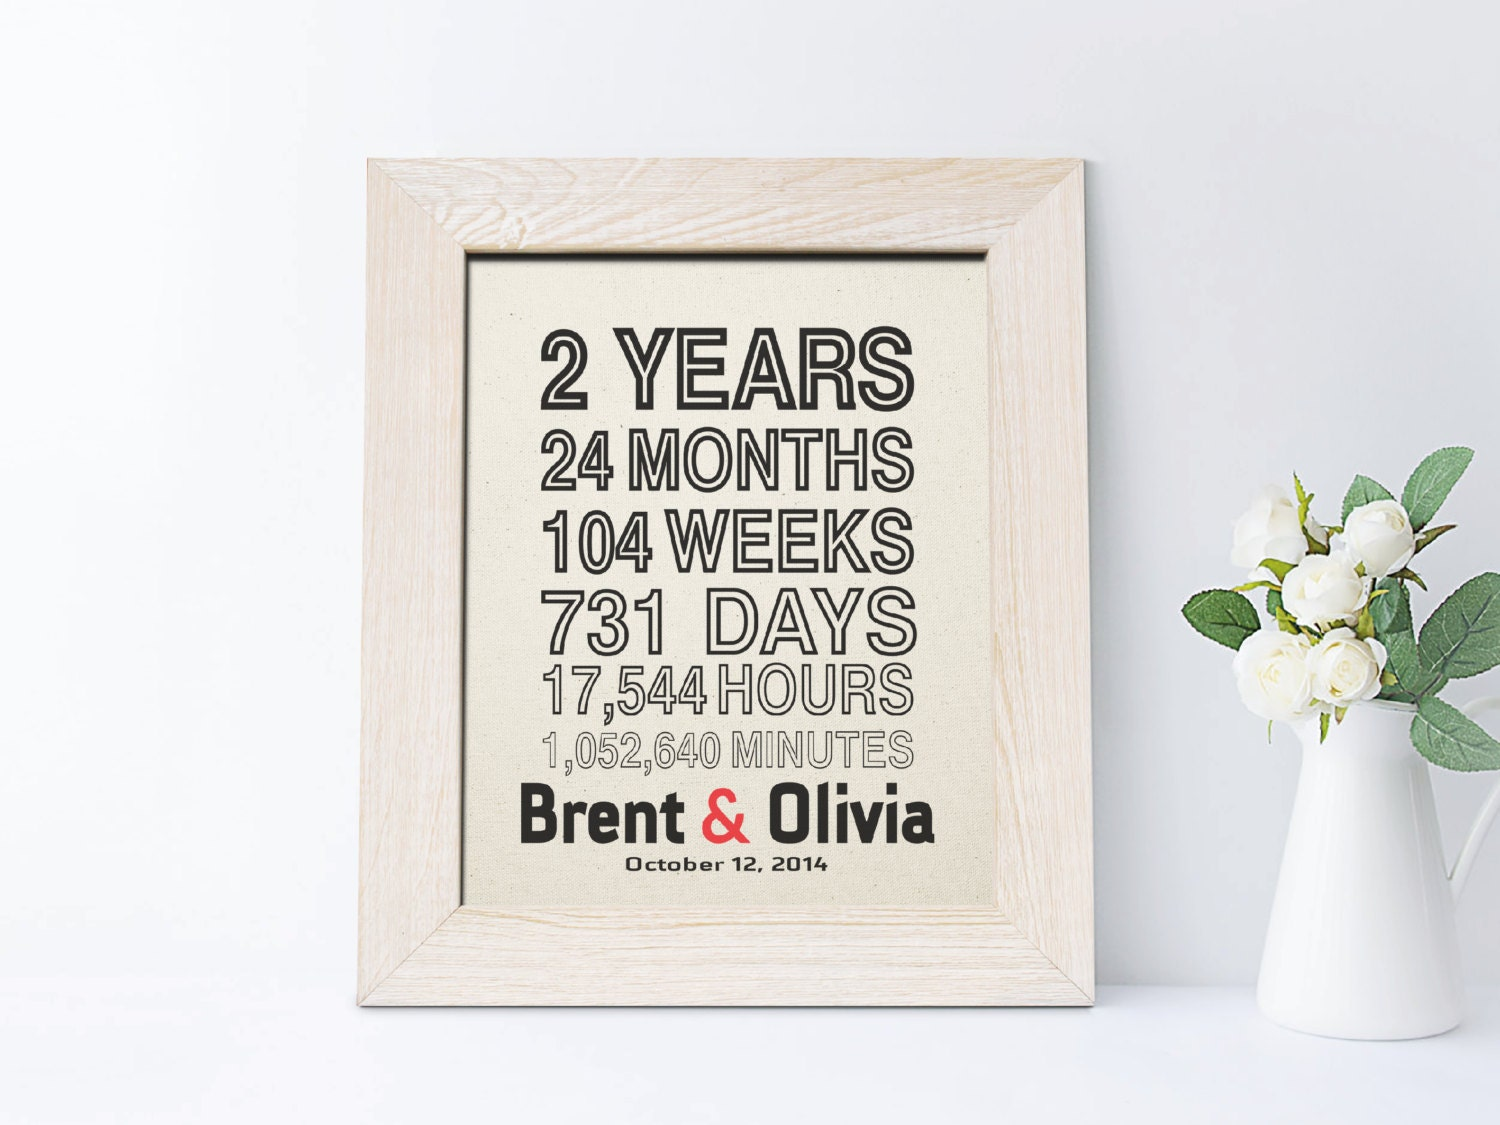 Second Wedding Anniversary Gifts For Husband: 2nd Anniversary Gift For Husband Cotton Anniversary Gift For